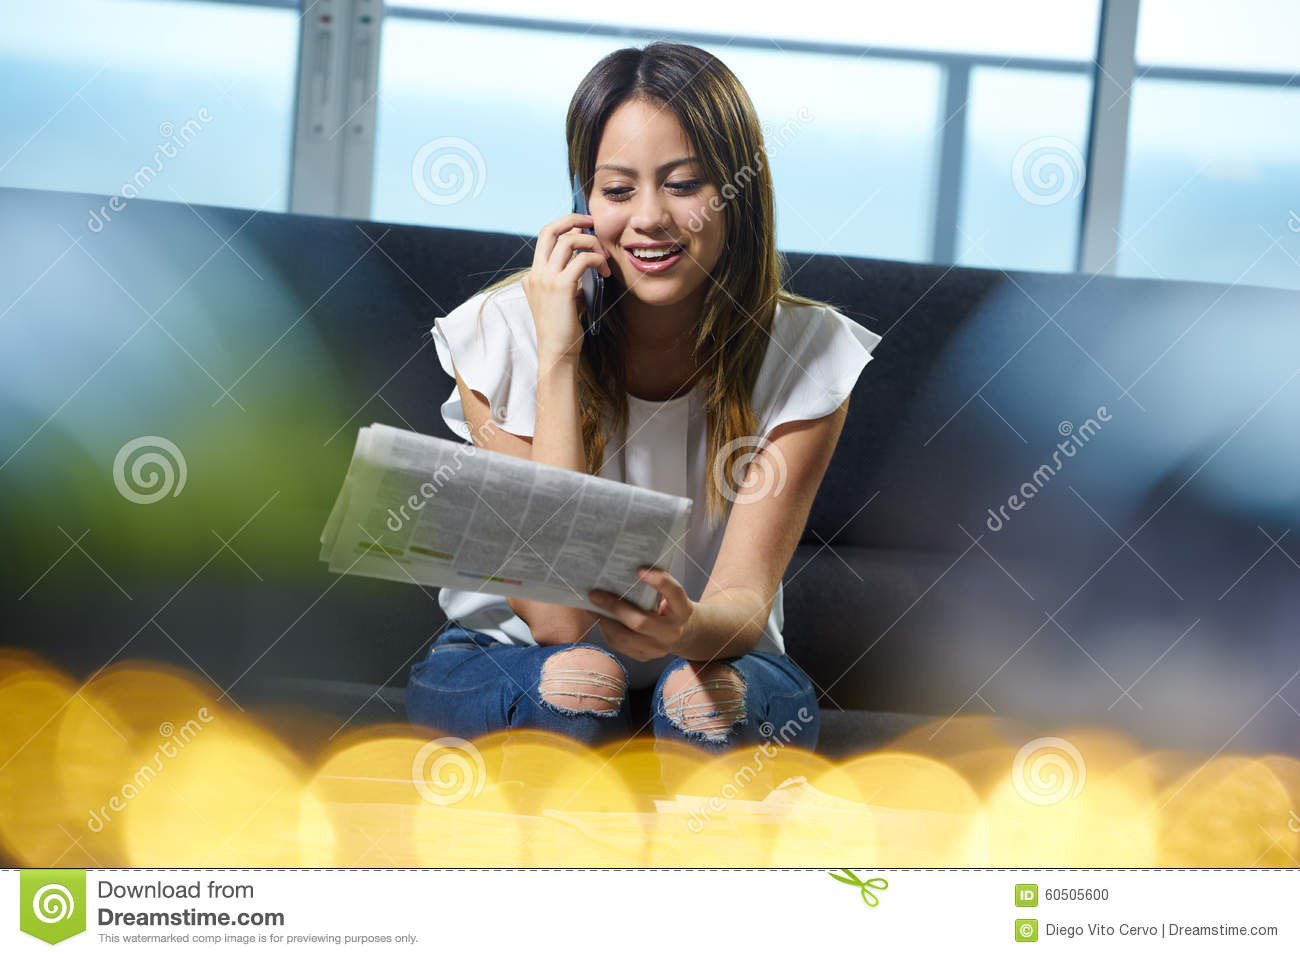 w phone calling for job announcement on newspaper stock photo w phone calling for job announcement on newspaper